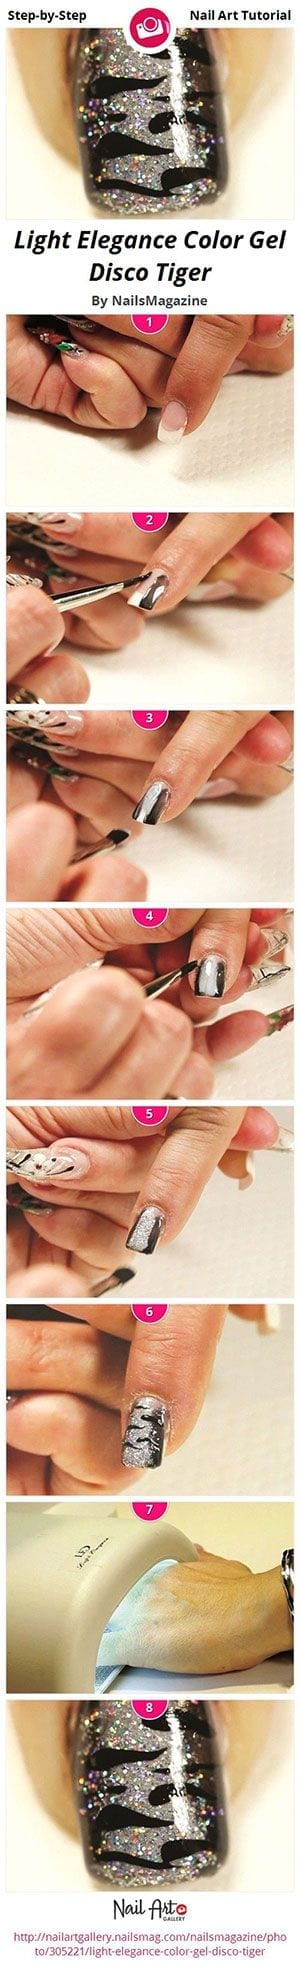 Easy-Simple-Step-By-Step-Gel-Nail-Art-Tutorials-For-Beginners-Learners-2014-9 How to Get Gel Nails- 20 Ideas and Tutorial for Gel Nail Art